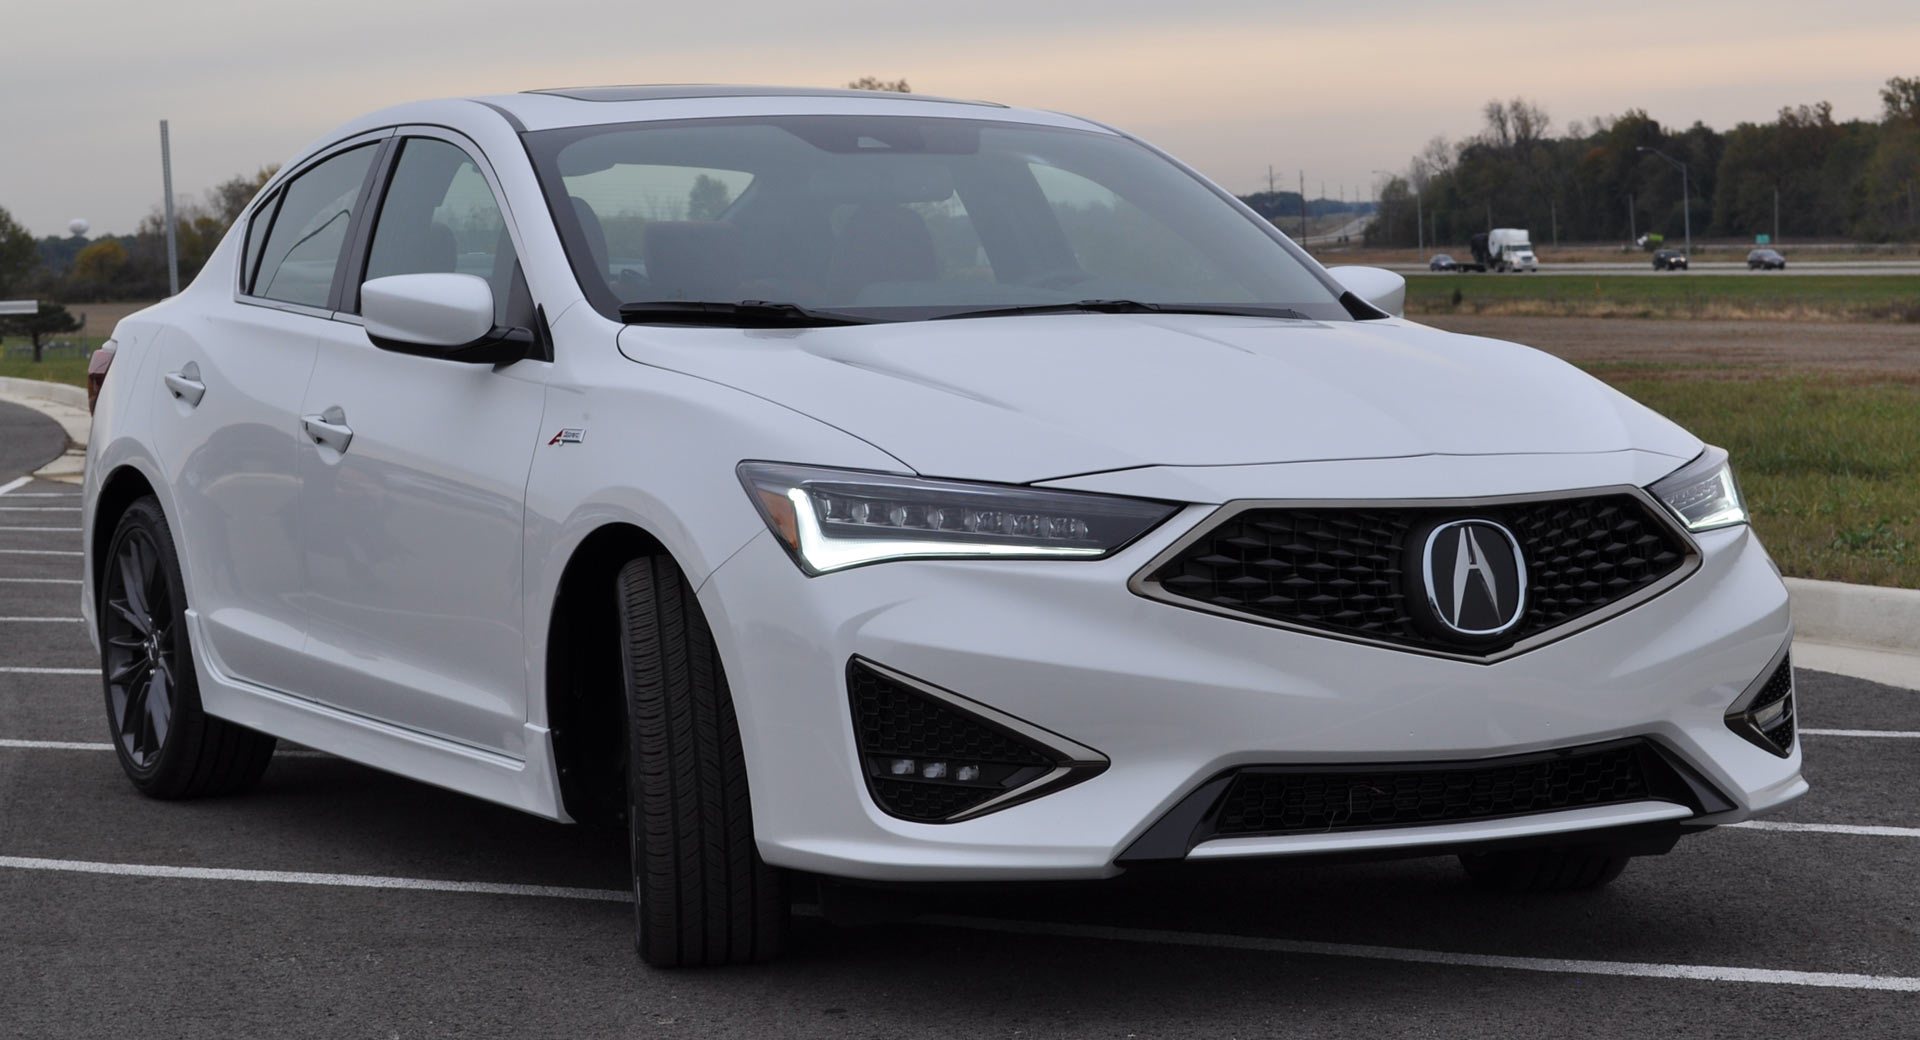 First Drive: 2019 Acura ILX Becomes More Compelling Thanks ...